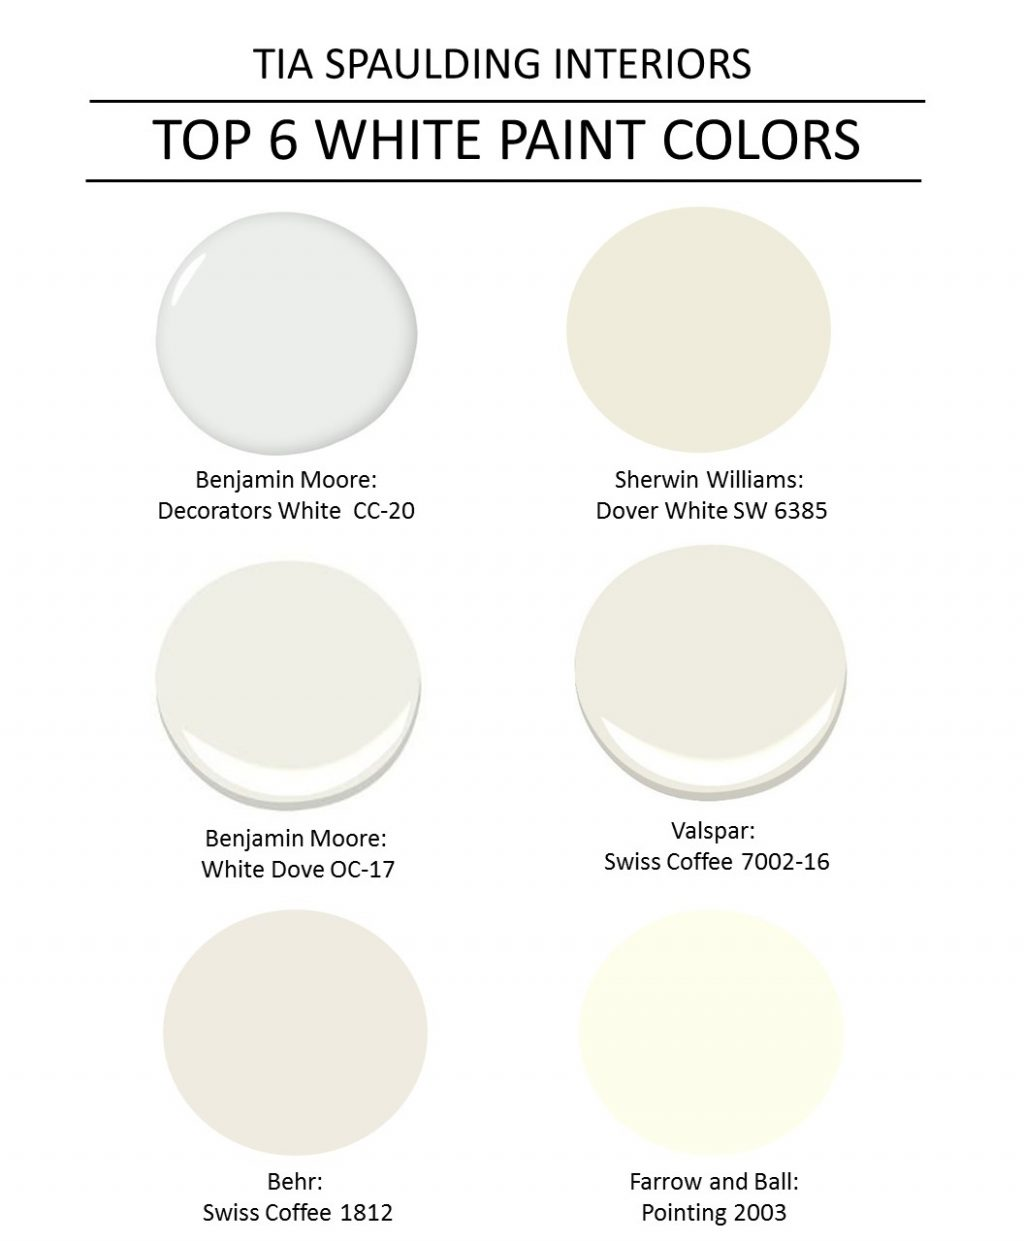 LETu0026#39;S TALK: MY FAVORITE WHITE PAINT COLORS